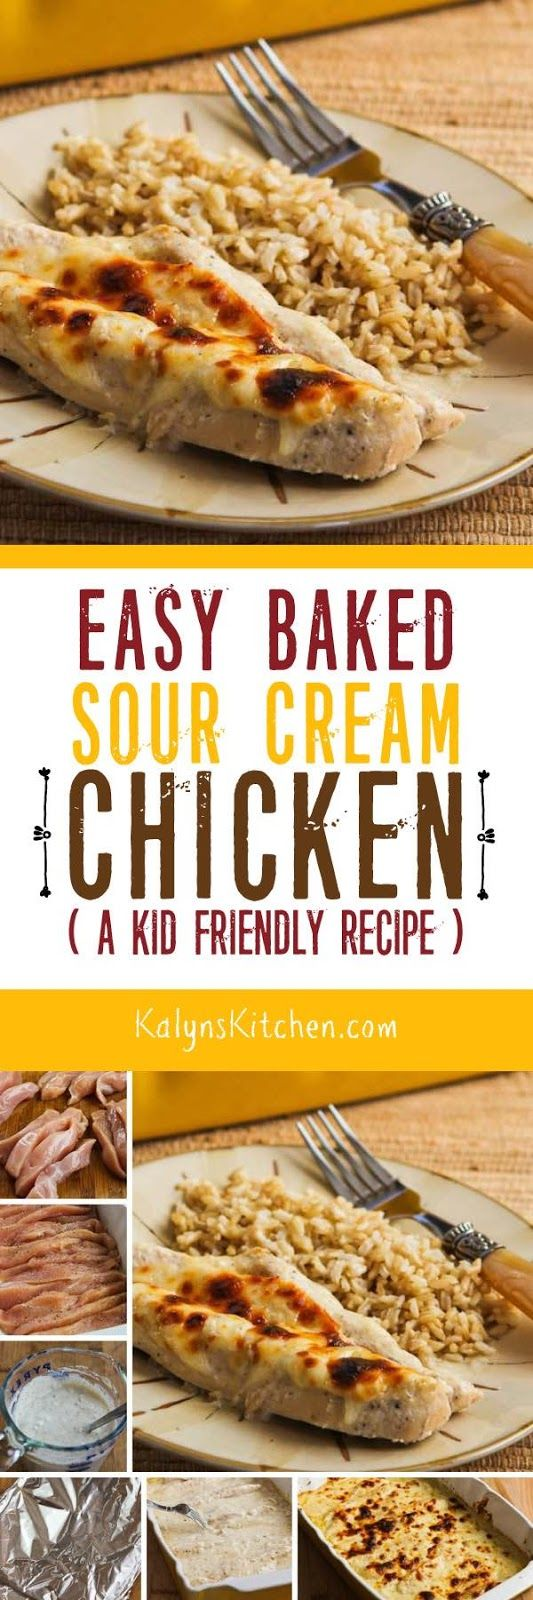 Sour cream baked chicken recipes